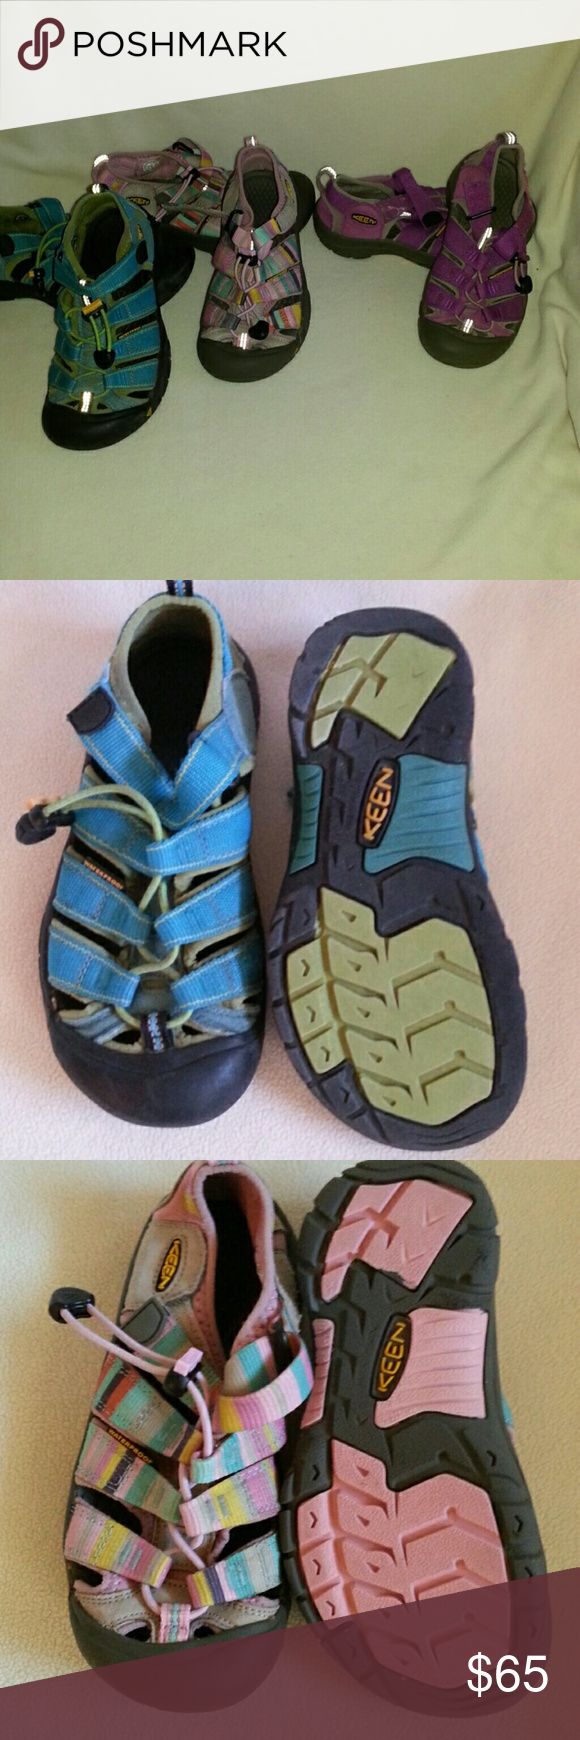 Kids Keen's 3PAIRS for 65.00 Girls youth KEEN-Newport H2 Sport sandals 2 pairs size 1. Blue green size 2 youths.  Add some adventure, flexibility & style on the trail or in the water.   These are washable (they have been washed) polyester webbing upper with aegis microbe shield makes this sandal versatile in any setting Quick draw elastic cord lace.  Theis style tends to run small.   For accurate fit you sould go up a 1/2 SIZE UP.  These have been loved but still has lots of wear left in…